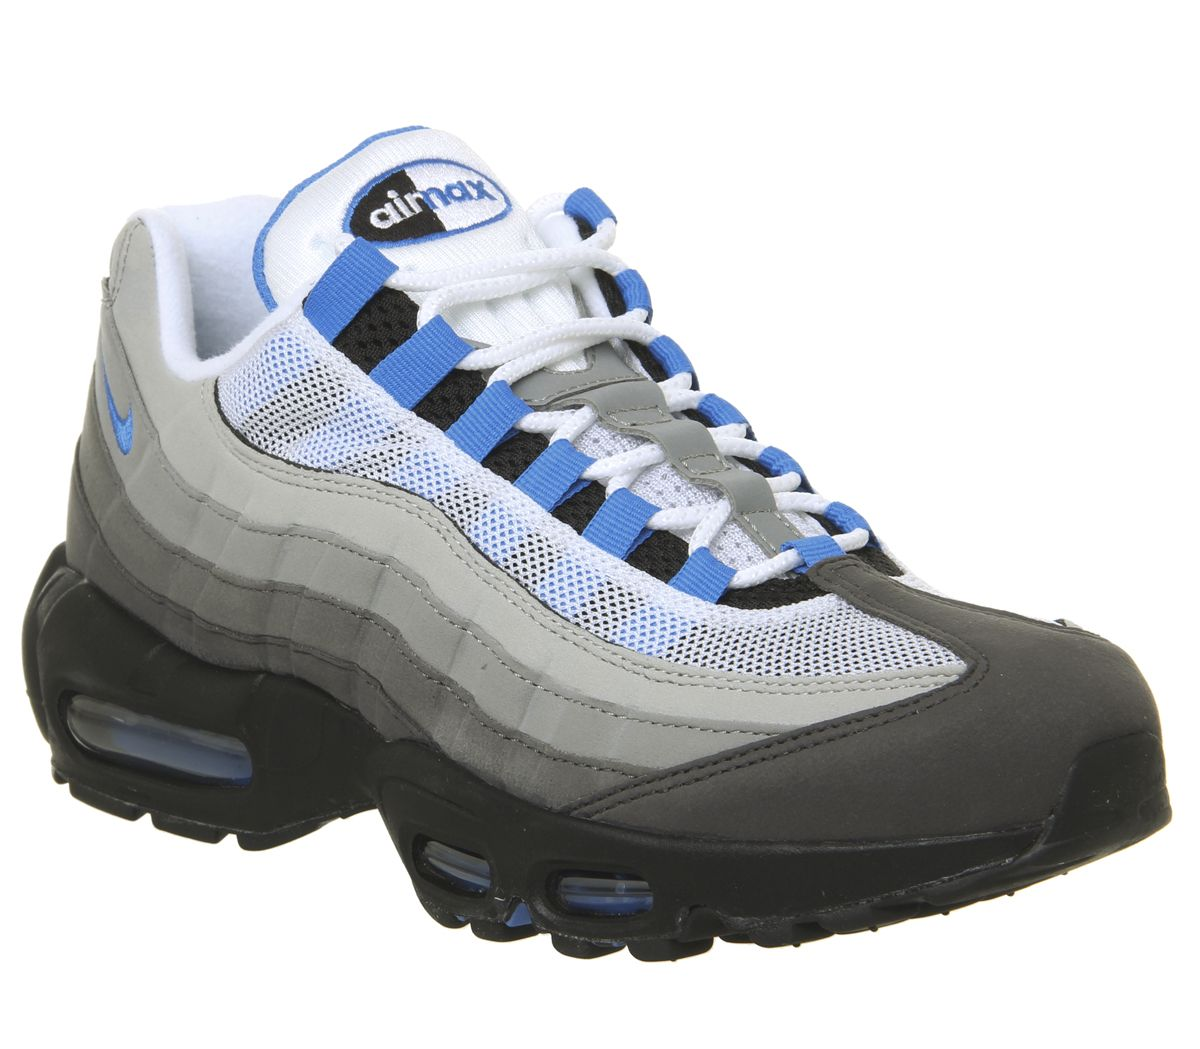 timeless design f3cba d38ad Nike Air Max 95 Trainers White Photo Blue Granite Dust - His trainers